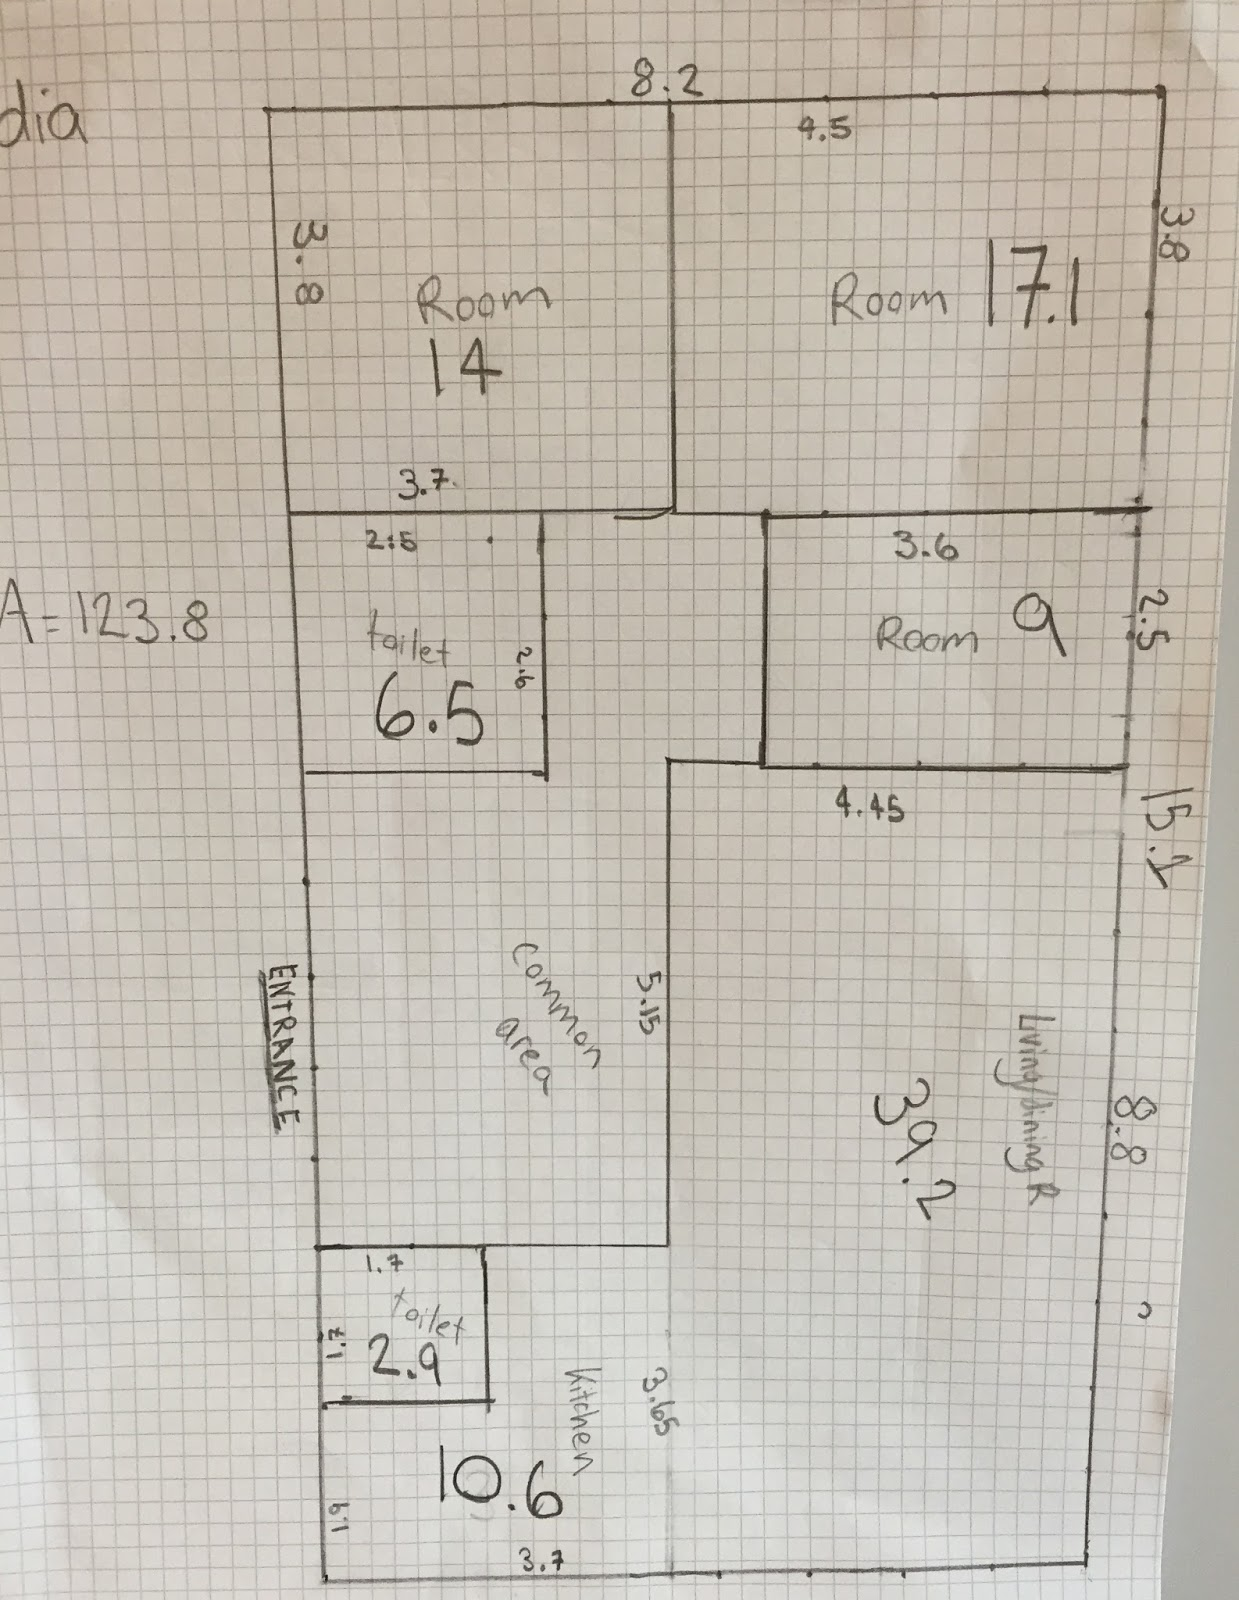 How To Determine Area And Perimeter In Autocad 2015 When Sharing Our Floor  Plans In Groups, We Asked Each Other The Following Questions As